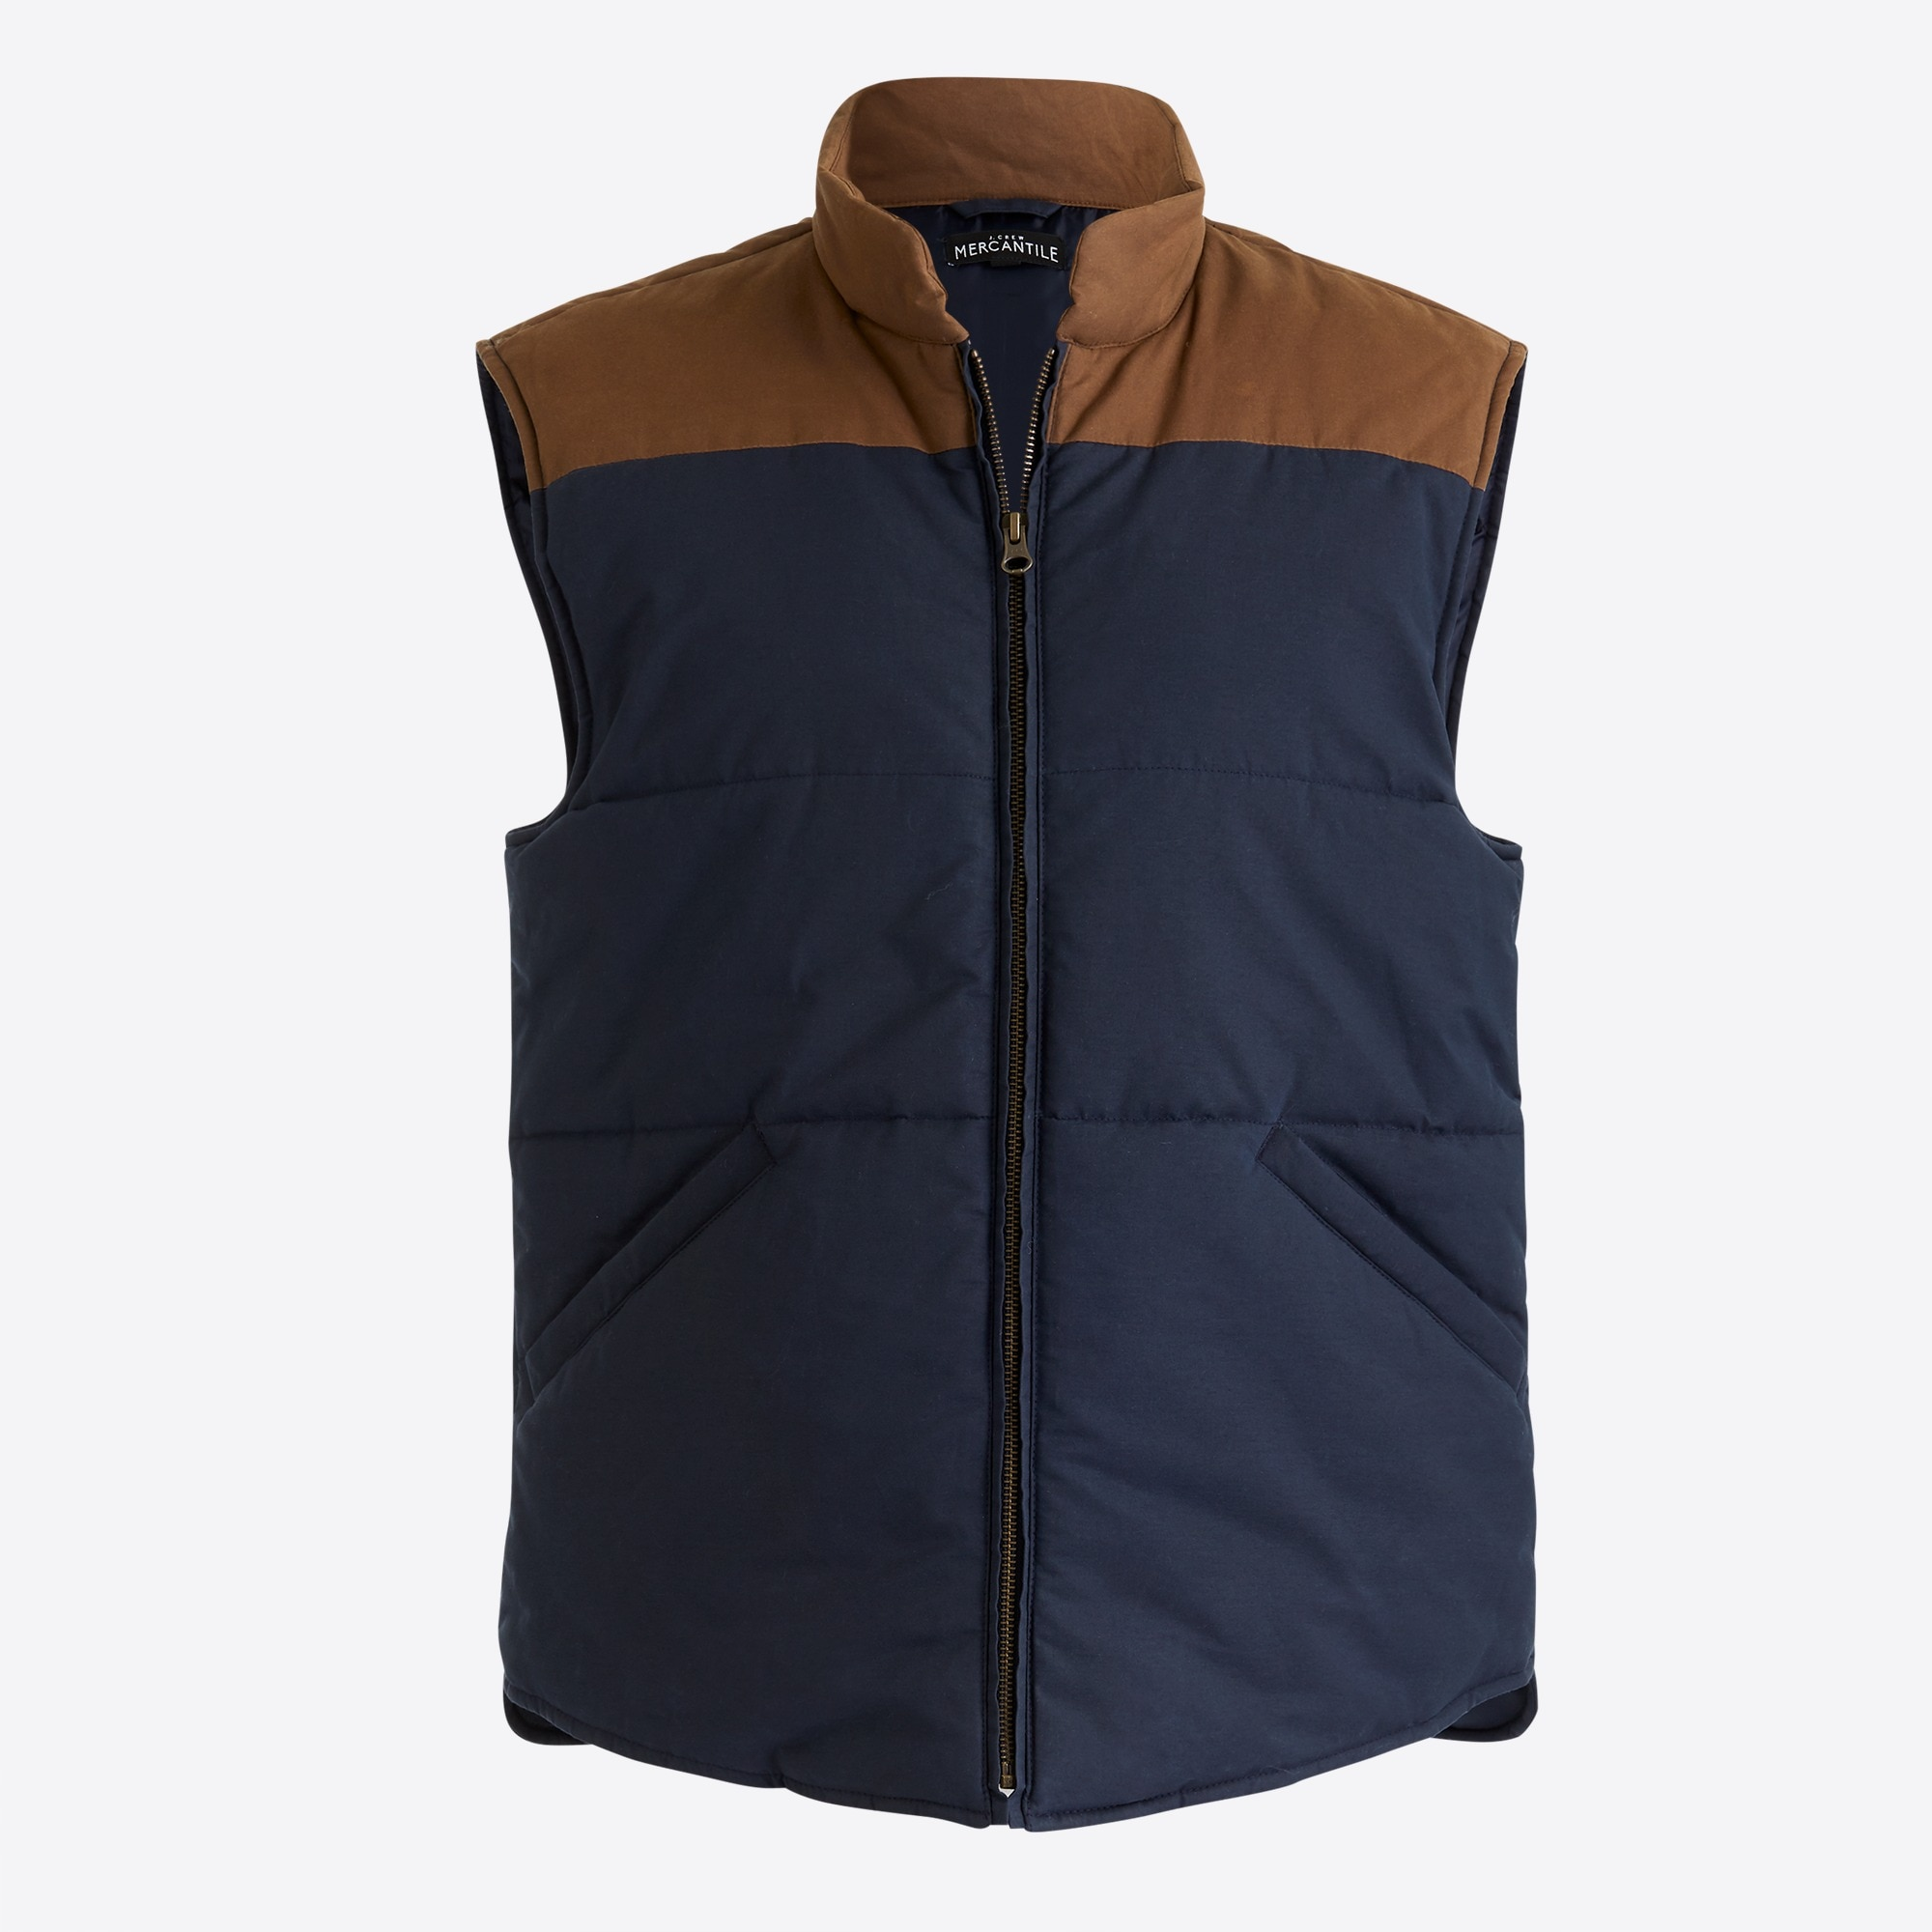 Image 2 for Trekker vest